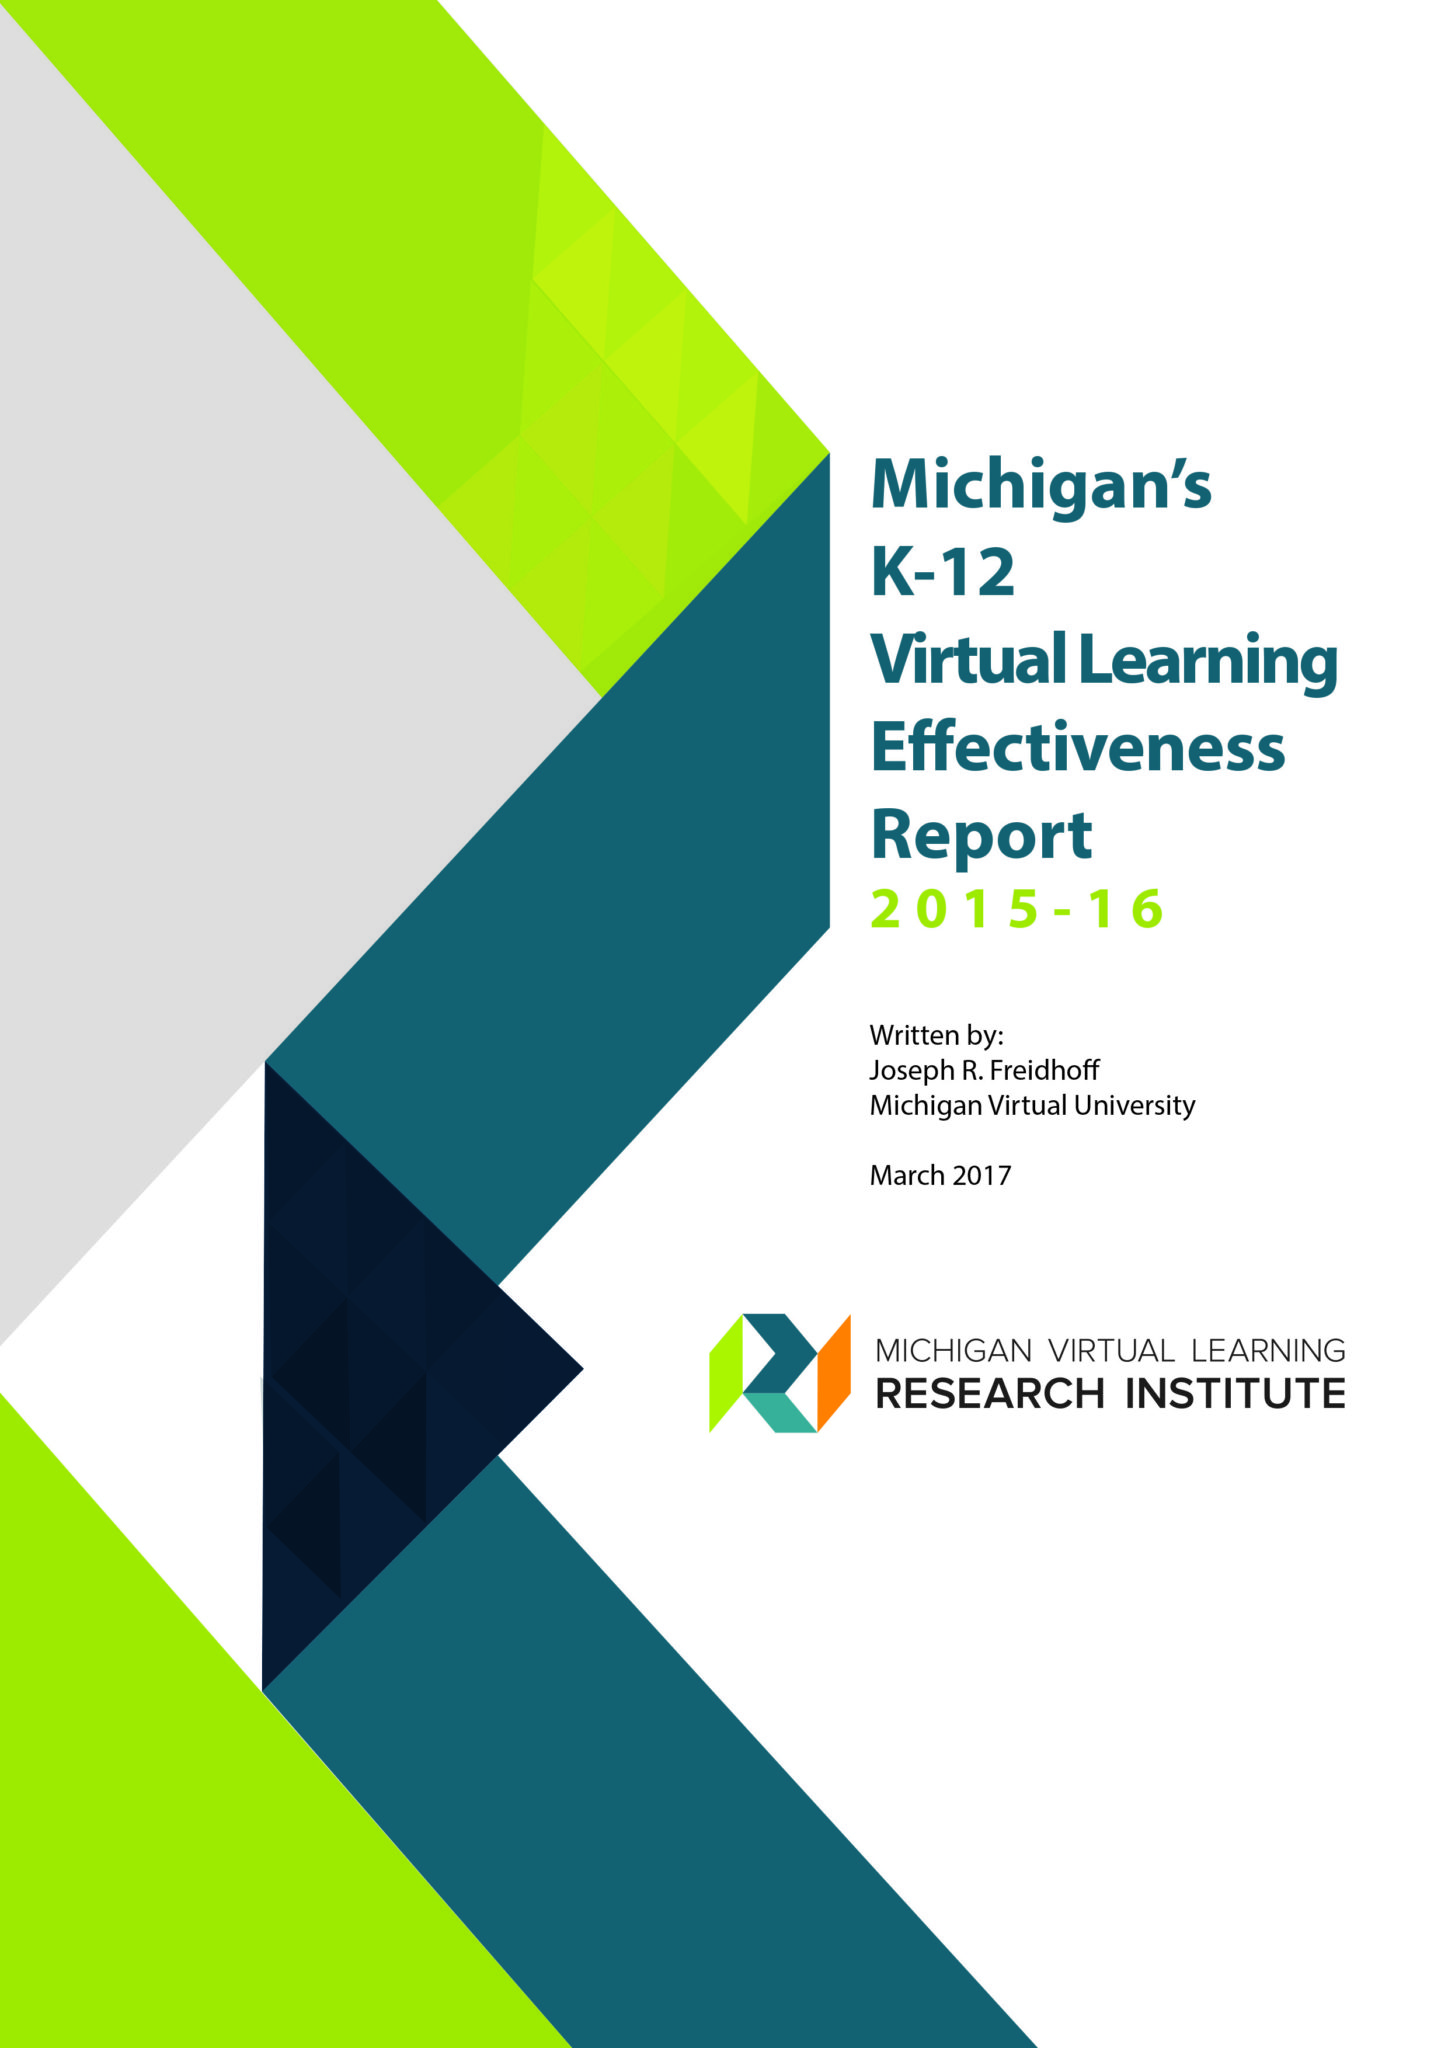 Michigan's K-12 Virtual Learning Effectiveness Report 2015-16